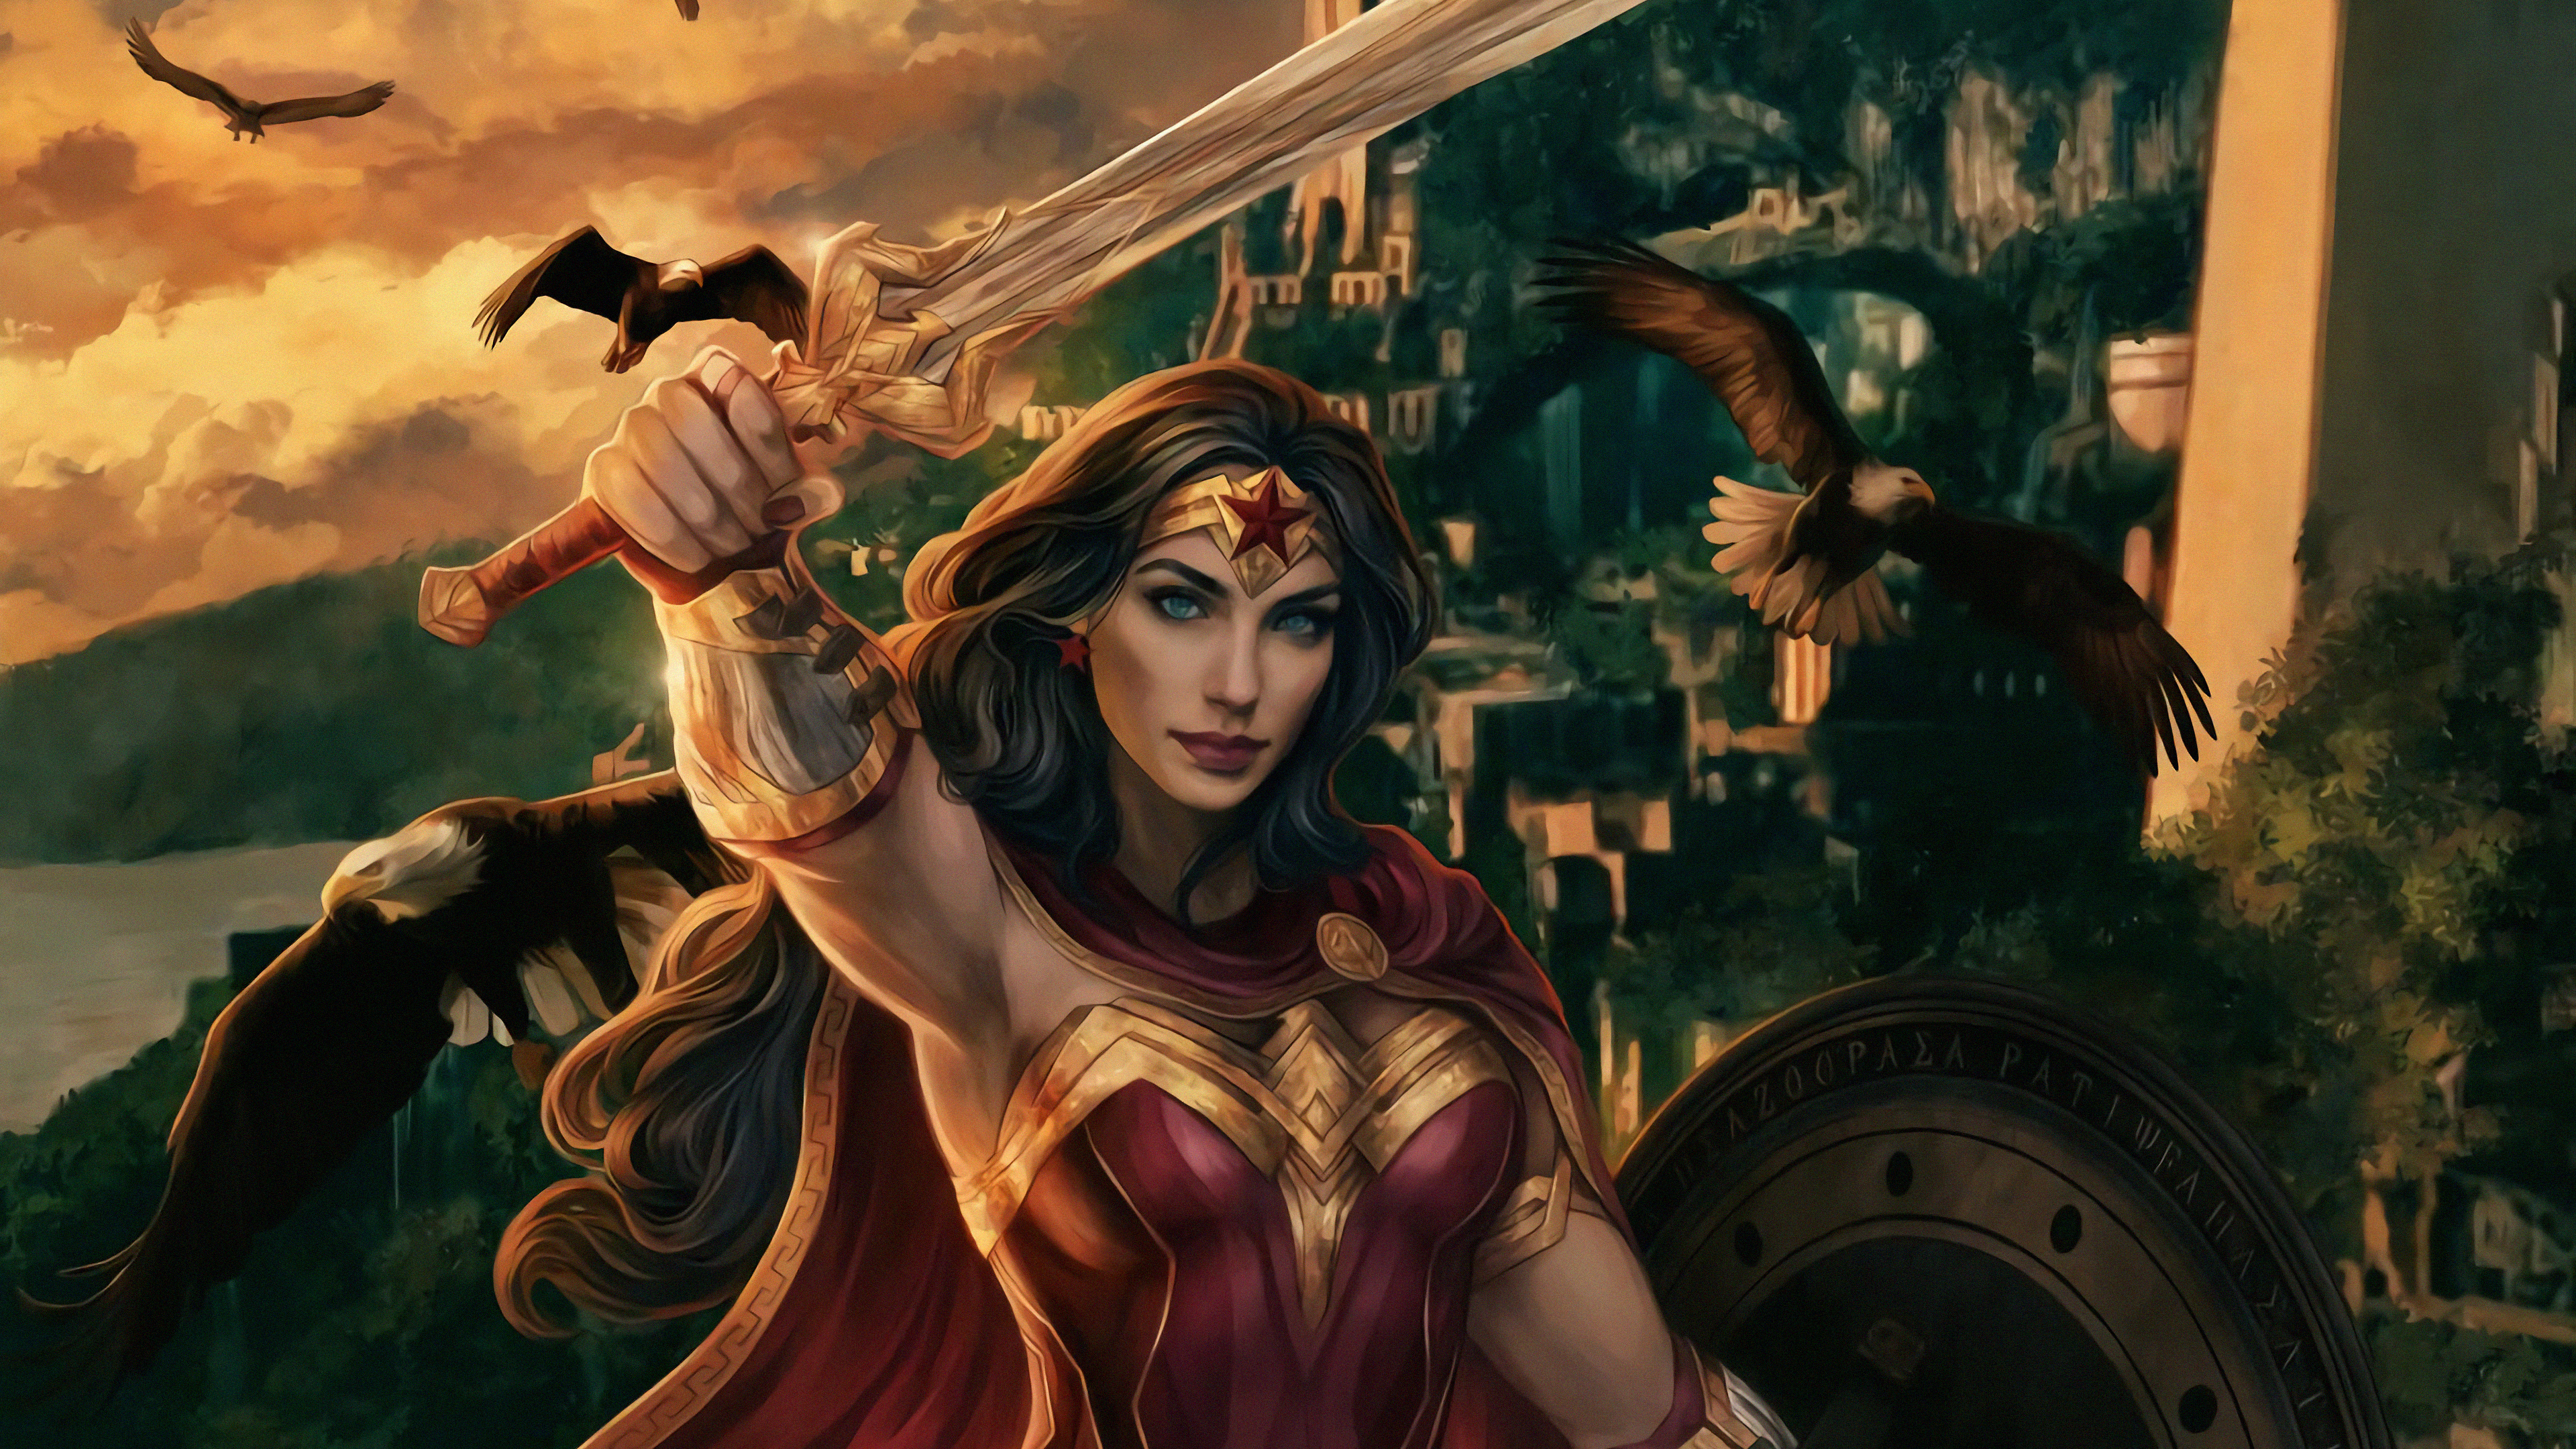 wonder woman real warrior art 1570394807 - Wonder Woman Real Warrior Art - wonder woman wallpapers, superheroes wallpapers, hd-wallpapers, digital art wallpapers, deviantart wallpapers, artwork wallpapers, artist wallpapers, 4k-wallpapers